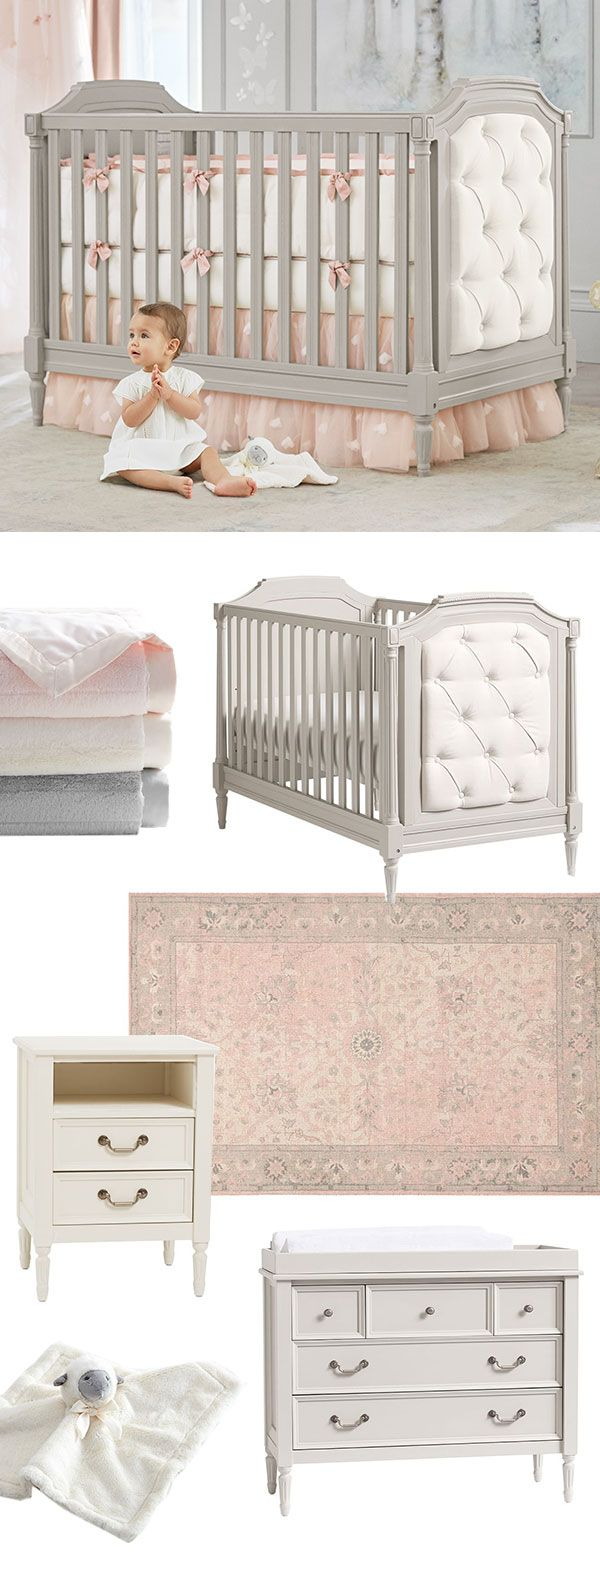 Almost Ready To Bring Home Baby? Since The Nursery Will Become New Parentsu0027  Most